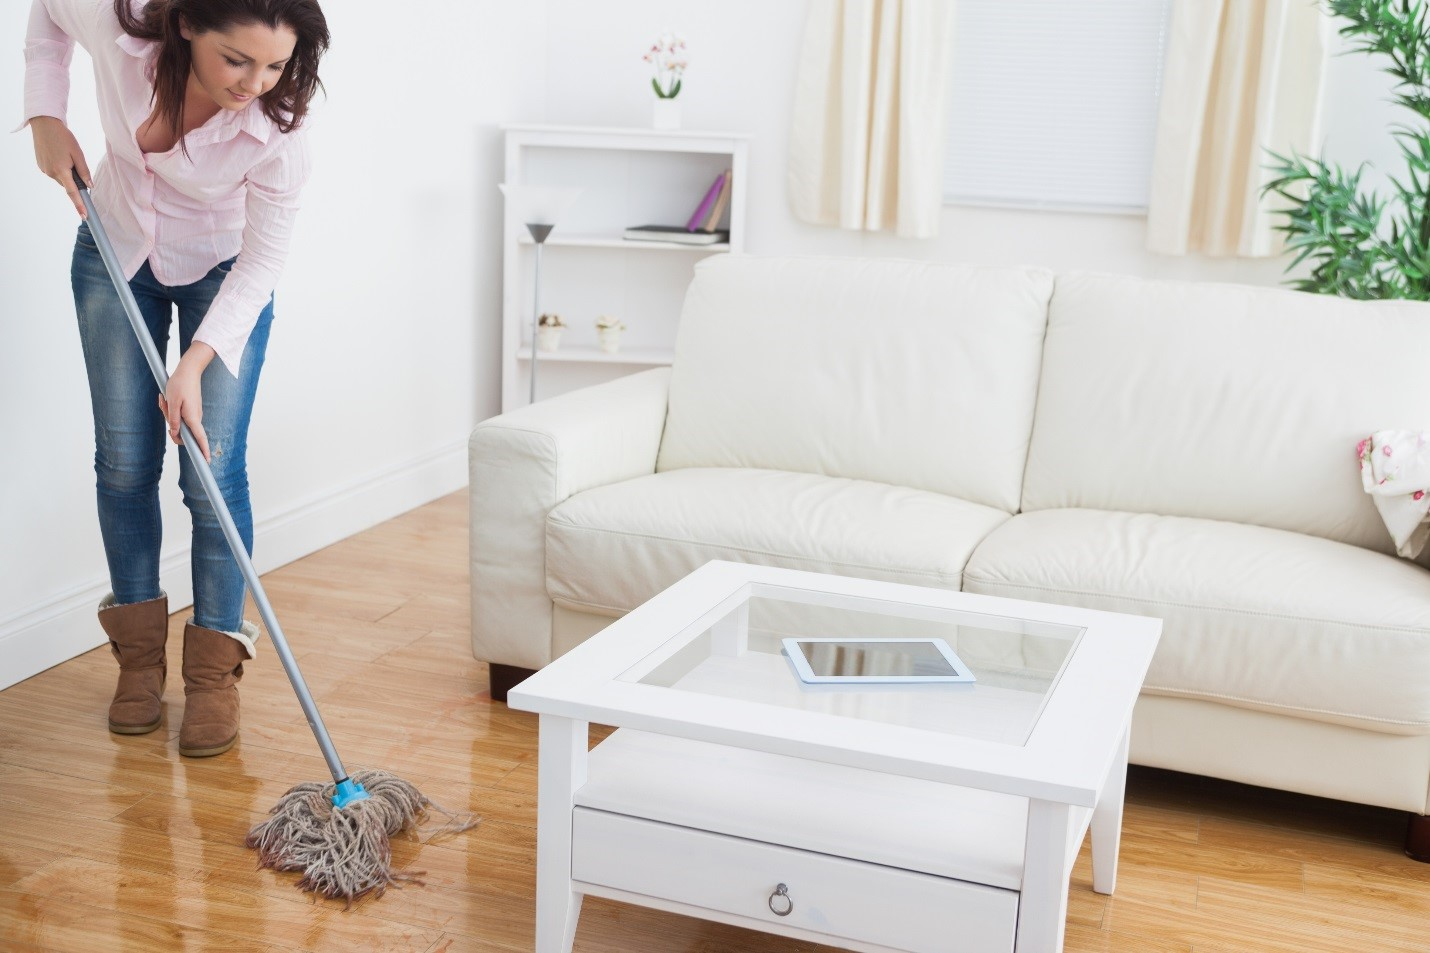 Wood floor cleaning services to get the wooden shine back for Floor cleaning services